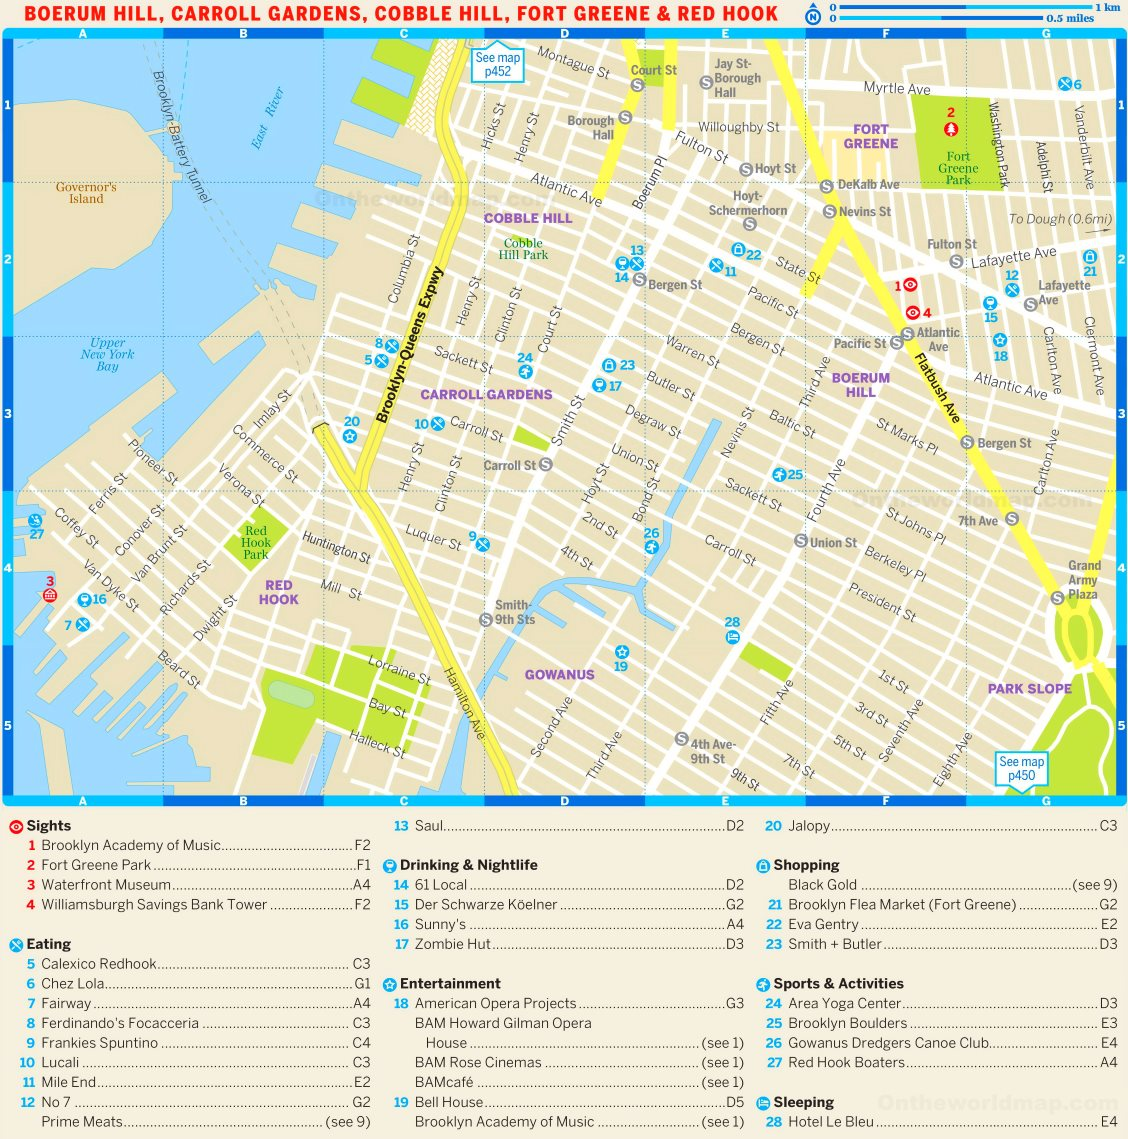 map of boerum hill brooklyn Map Of Boerum Hill Carroll Gardens Cobble Hill Fort Greene And map of boerum hill brooklyn